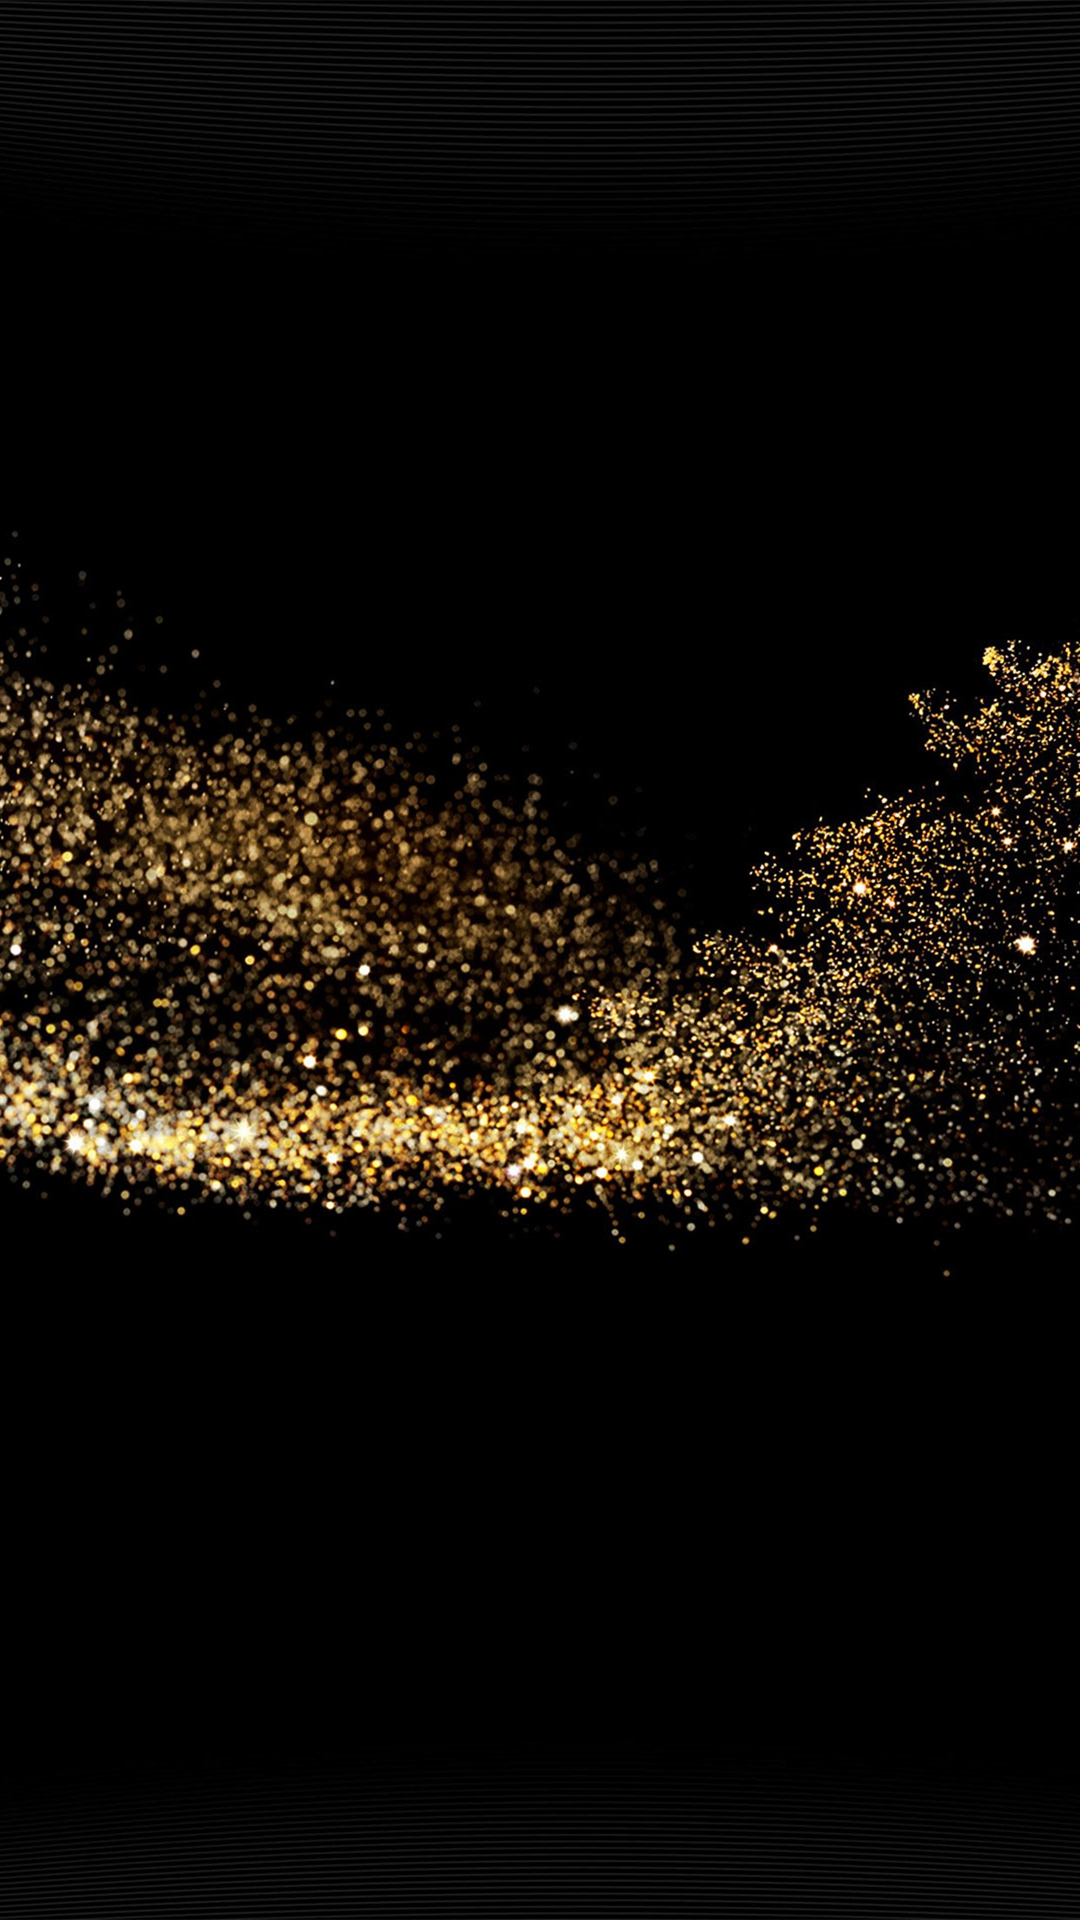 Gold-Sparkle-Beauty-Dark-Pattern-iPhone-plus-wallpaper-wp5405313